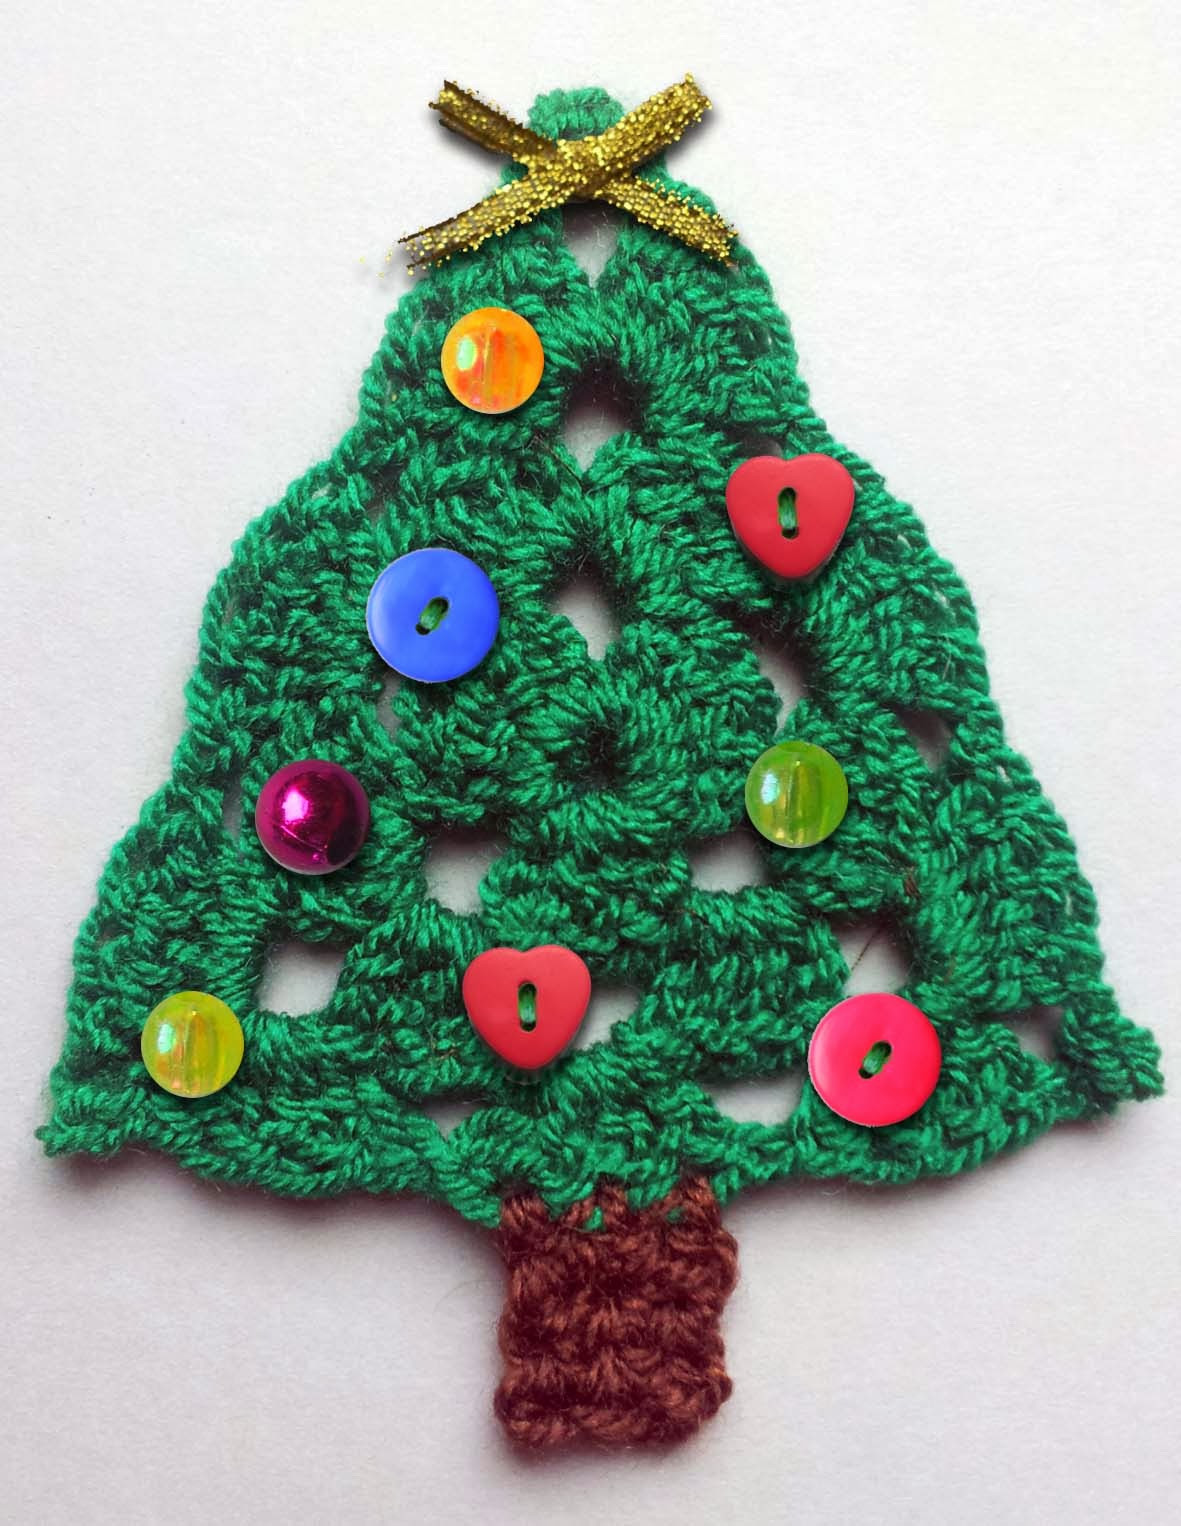 Crochet Christmas Tree Unique Thredhed the Cheat S Guide to Christmas Crochet Bunting Of Amazing 42 Ideas Crochet Christmas Tree